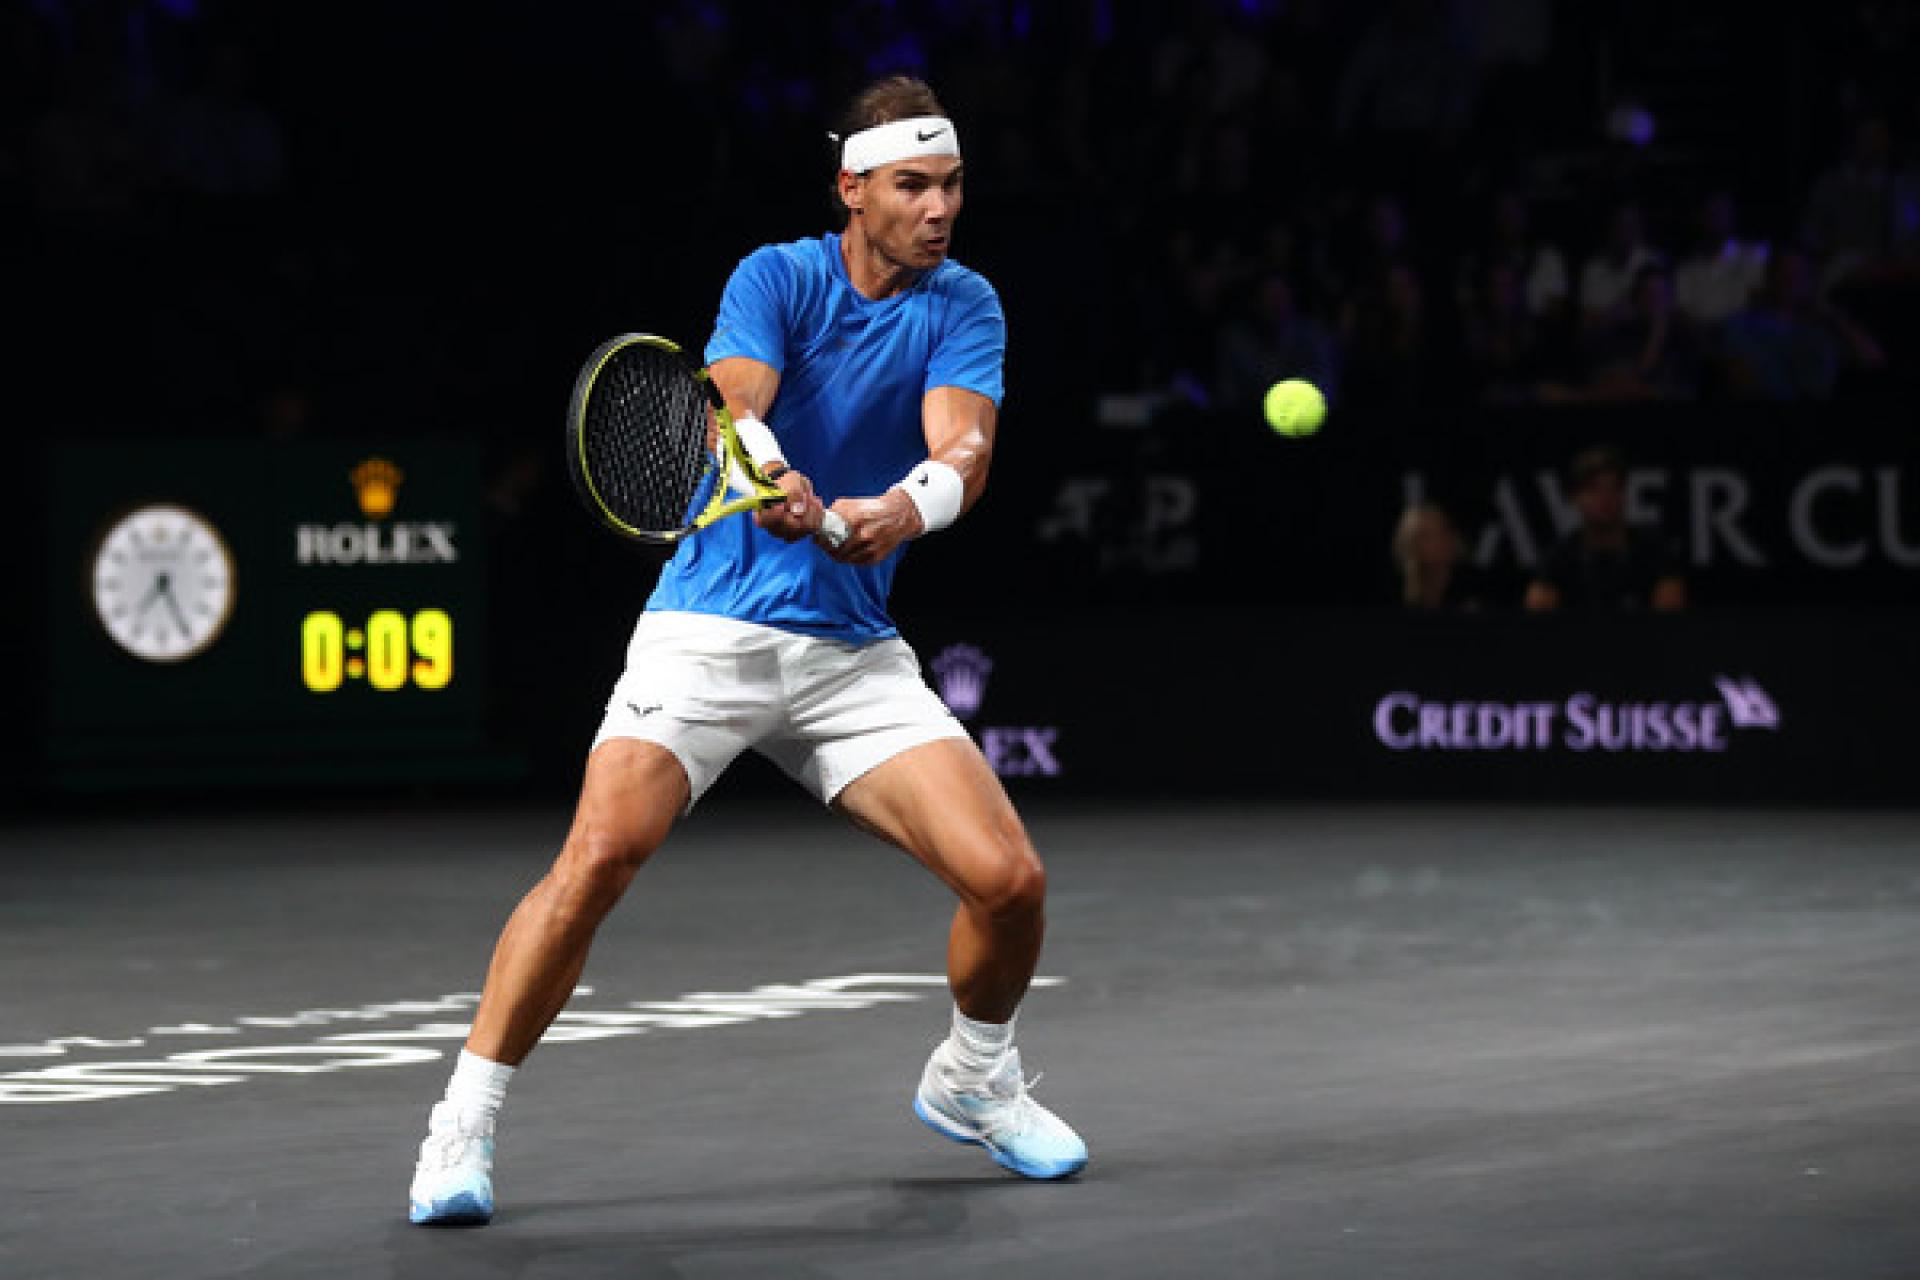 Laver Cup: Rafael Nadal tops Milos Raonic to extend Team Europe advantage